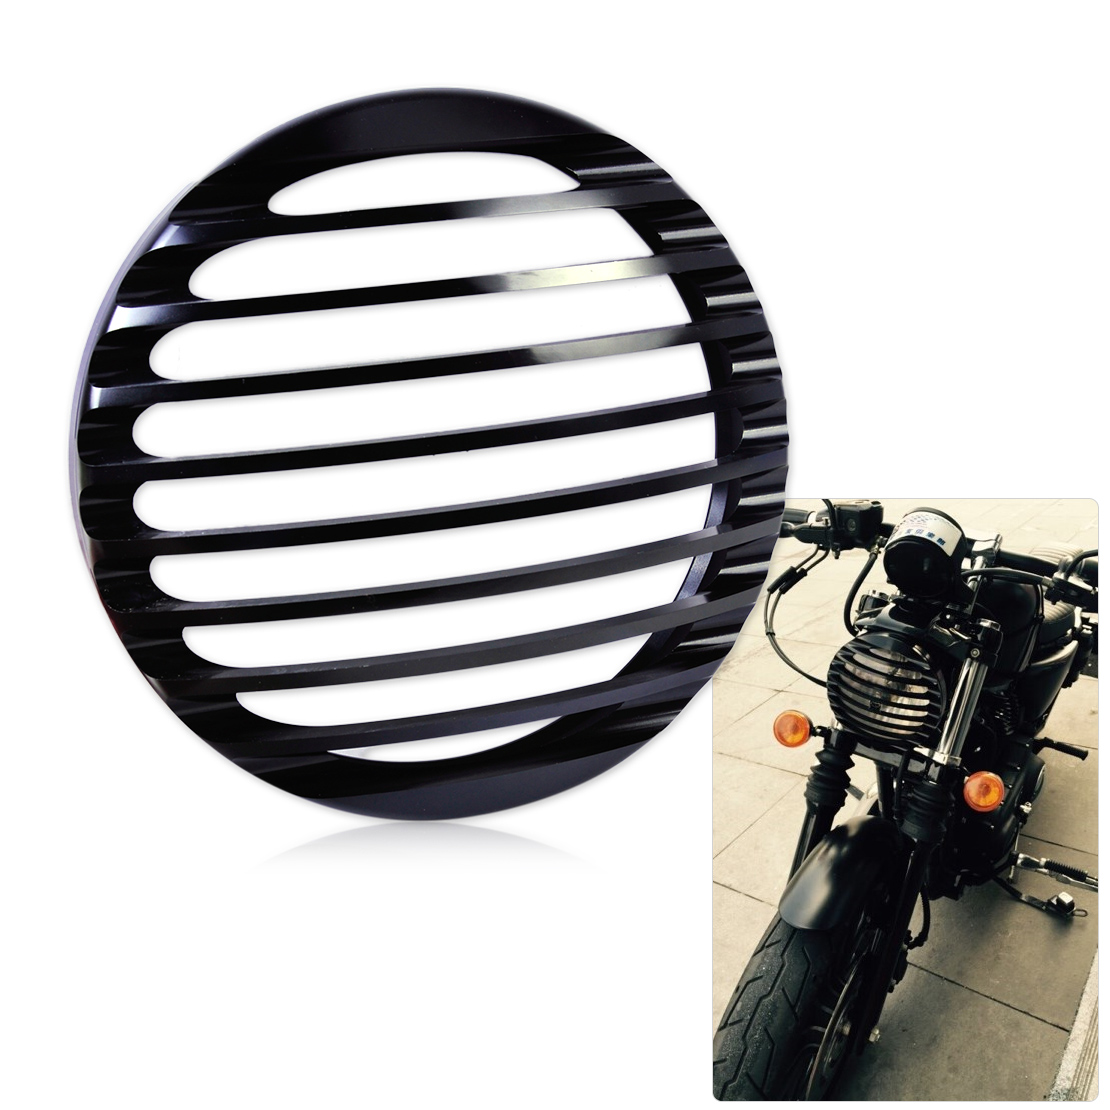 DWCX Headlight Grill Cover for Harley Davidson Sportster XL883 / XL1200 2004 2005 2006 2007 2008 2009 2010 2011 2012 2013 2014 motorcycle aluminum headlight grill cover case 5 3 4 black for harley xl883 04 05 2006 2007 2008 2009 2010 2011 2012 2013 2014